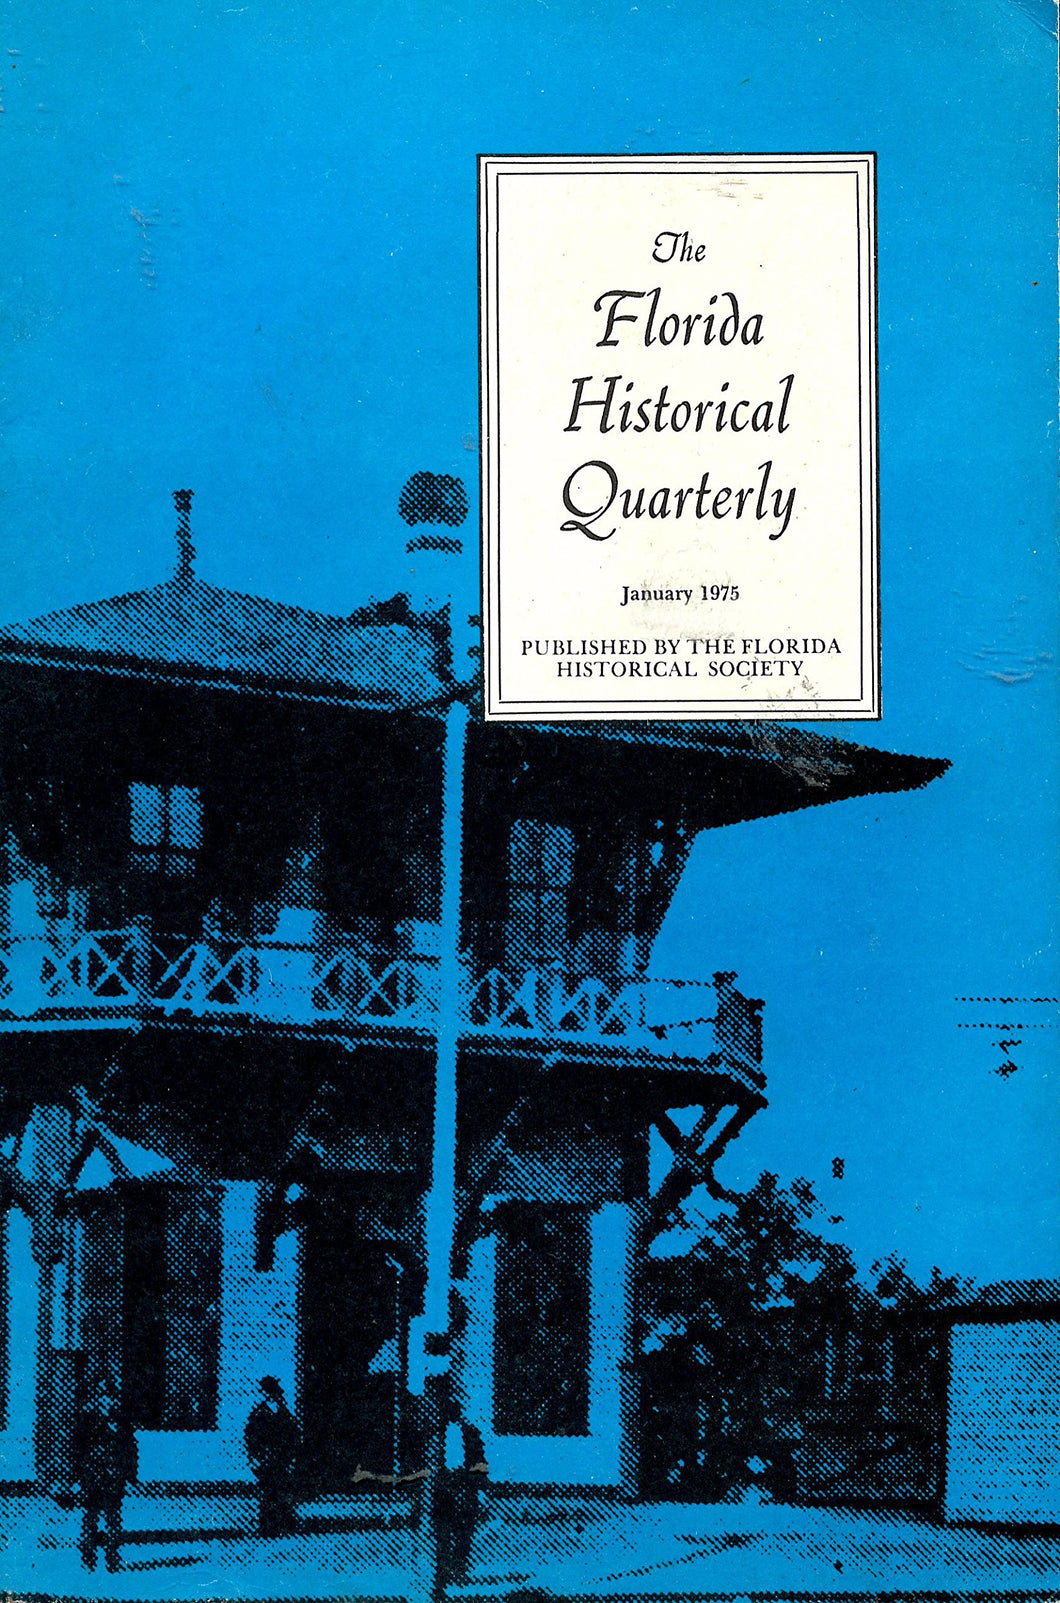 The Florida Historical Quarterly - January 1975